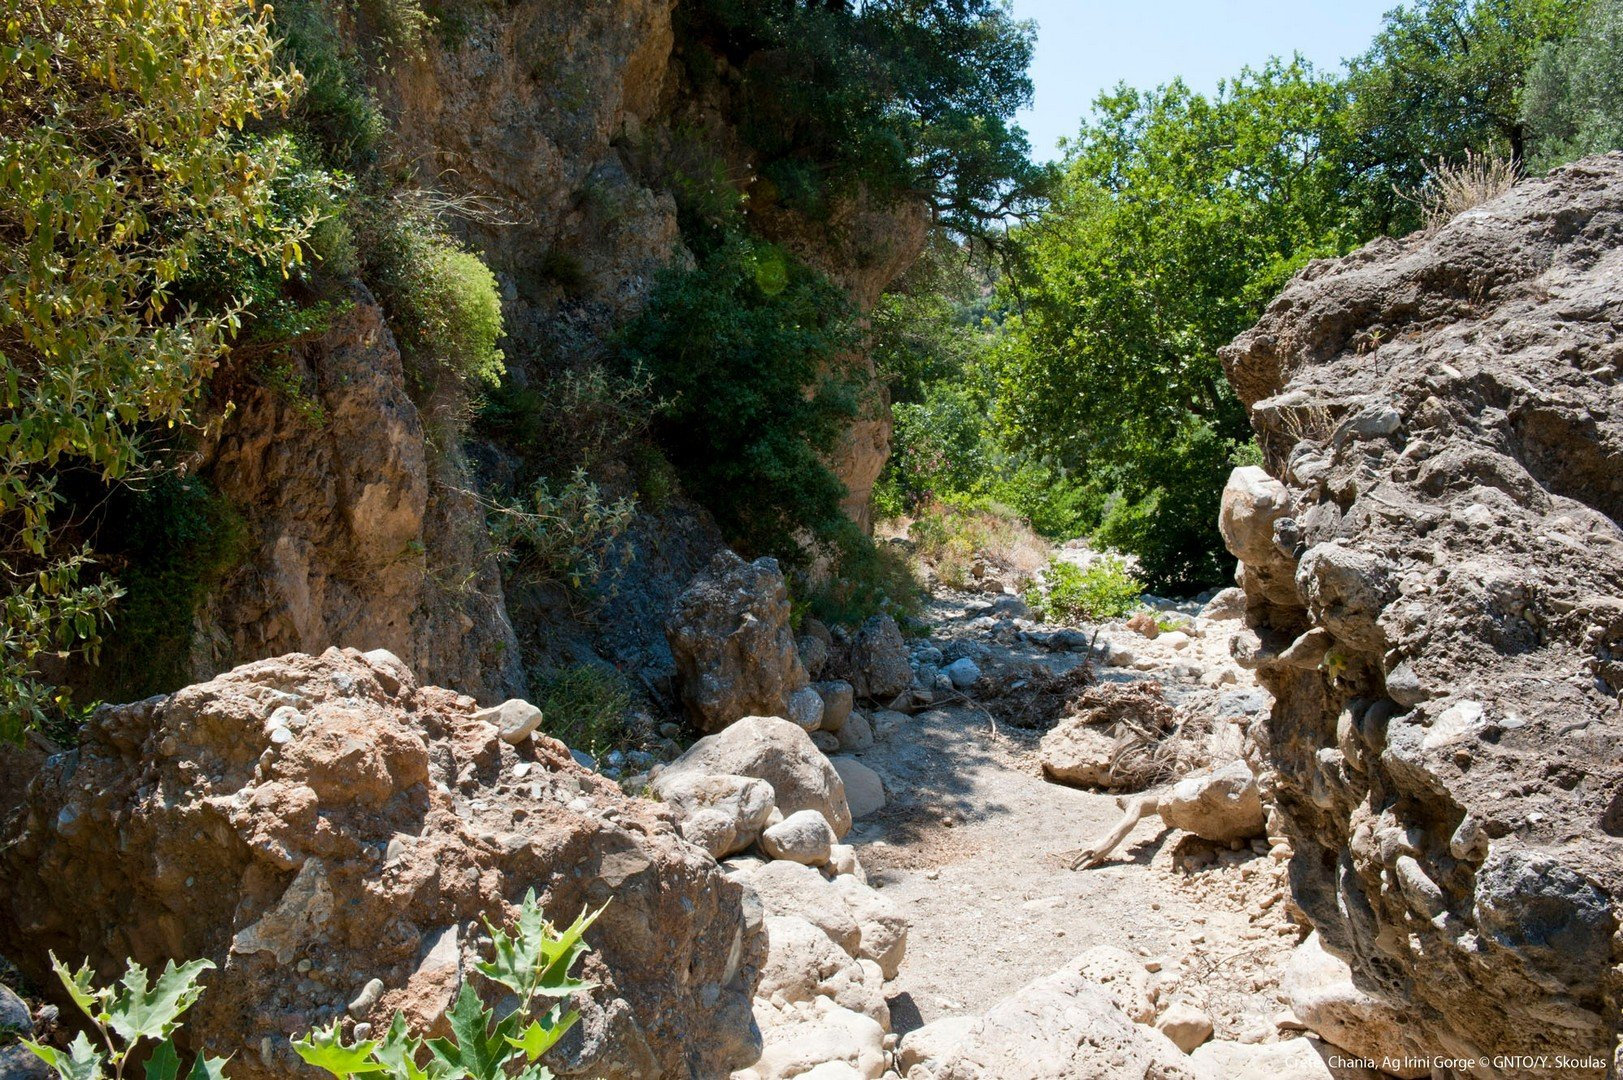 Ag. Irini Gorge, Sougia - Chania